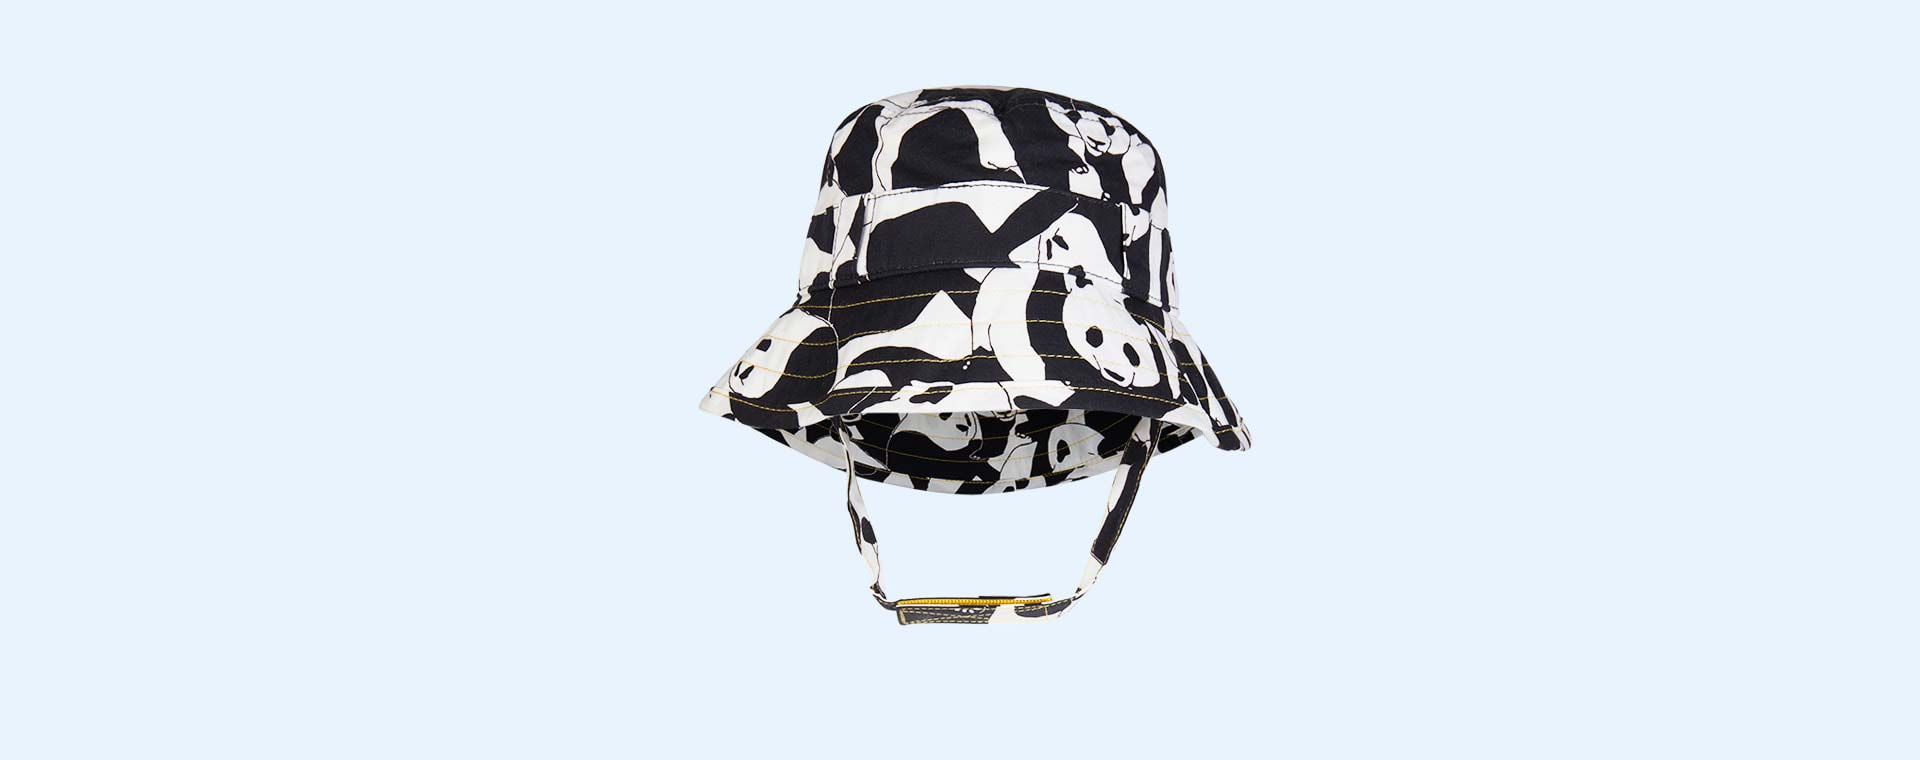 Panda Pop Little Hotdog Watson The Adventurer Bucket Hat